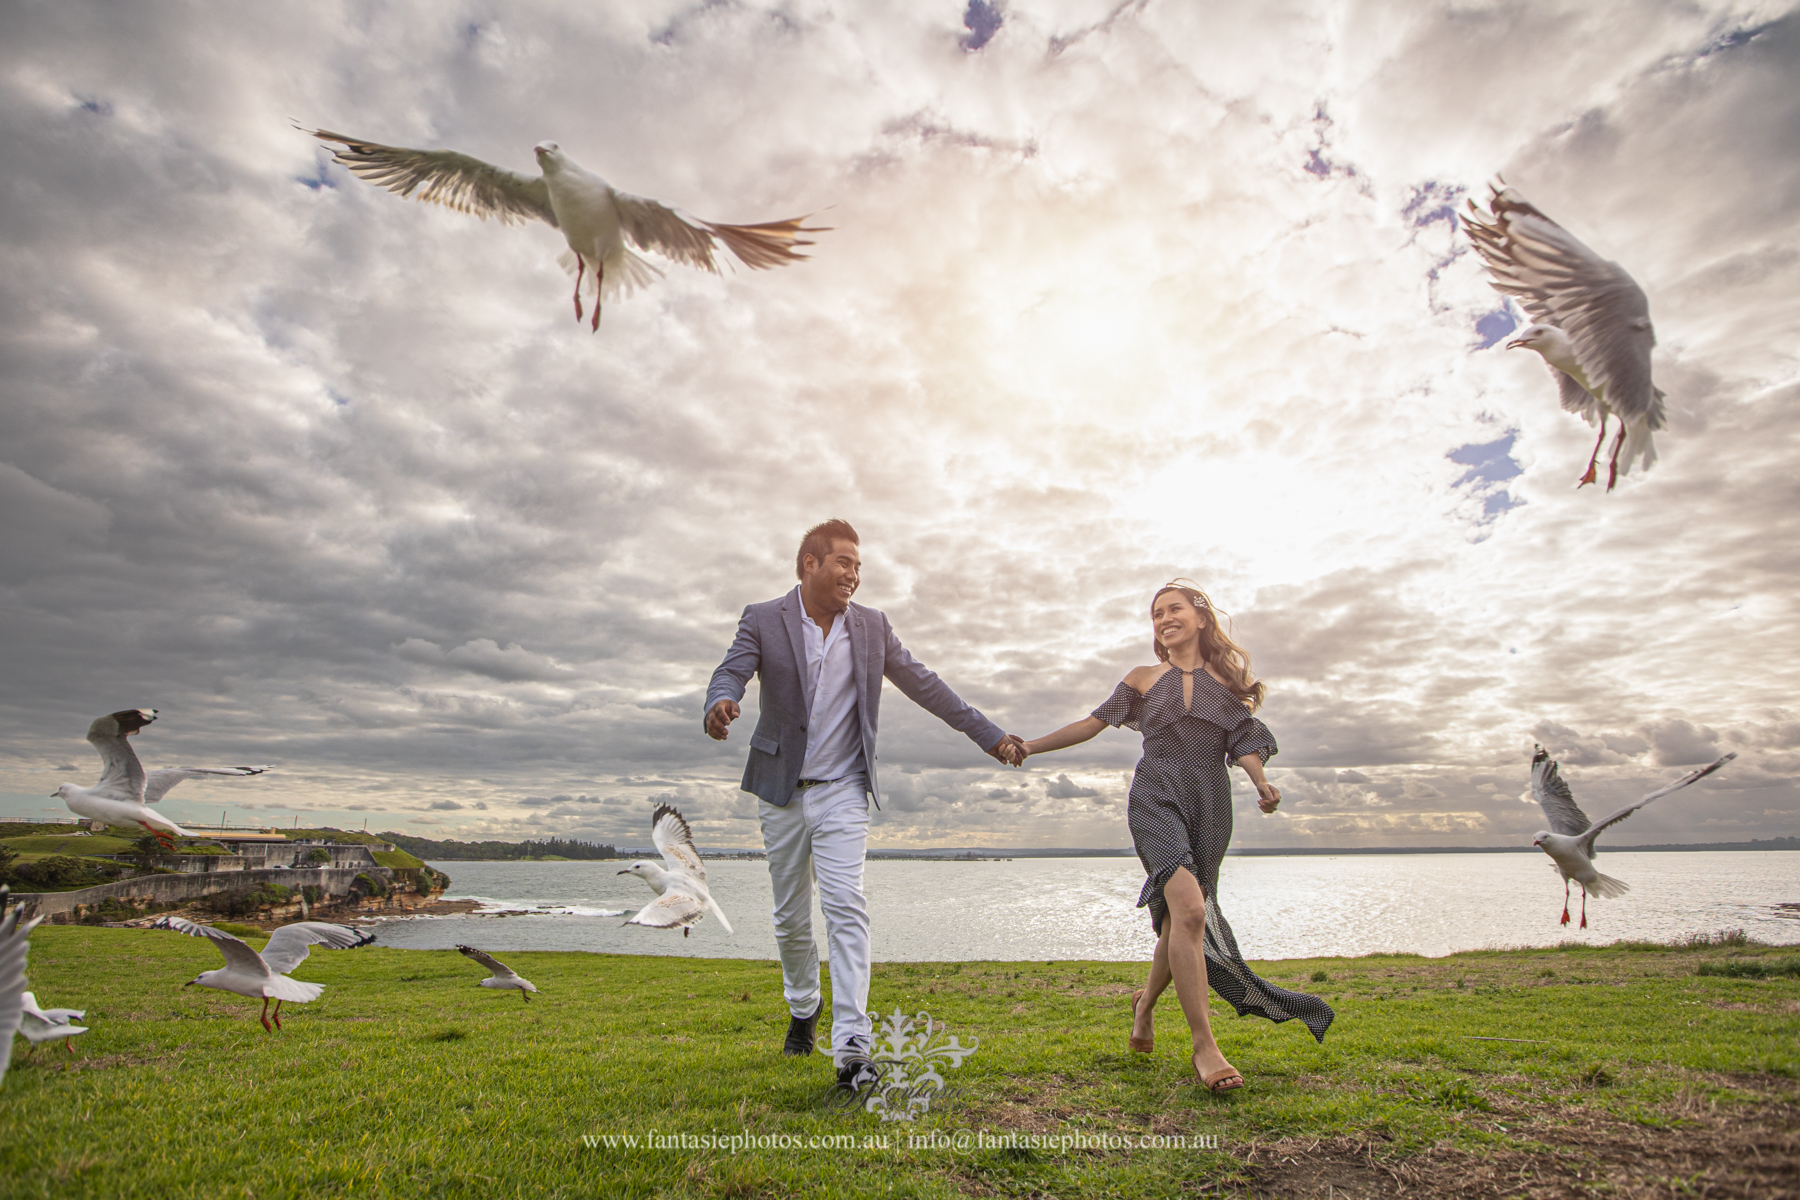 Wedding Photography La Perouse | Fantasie Photography